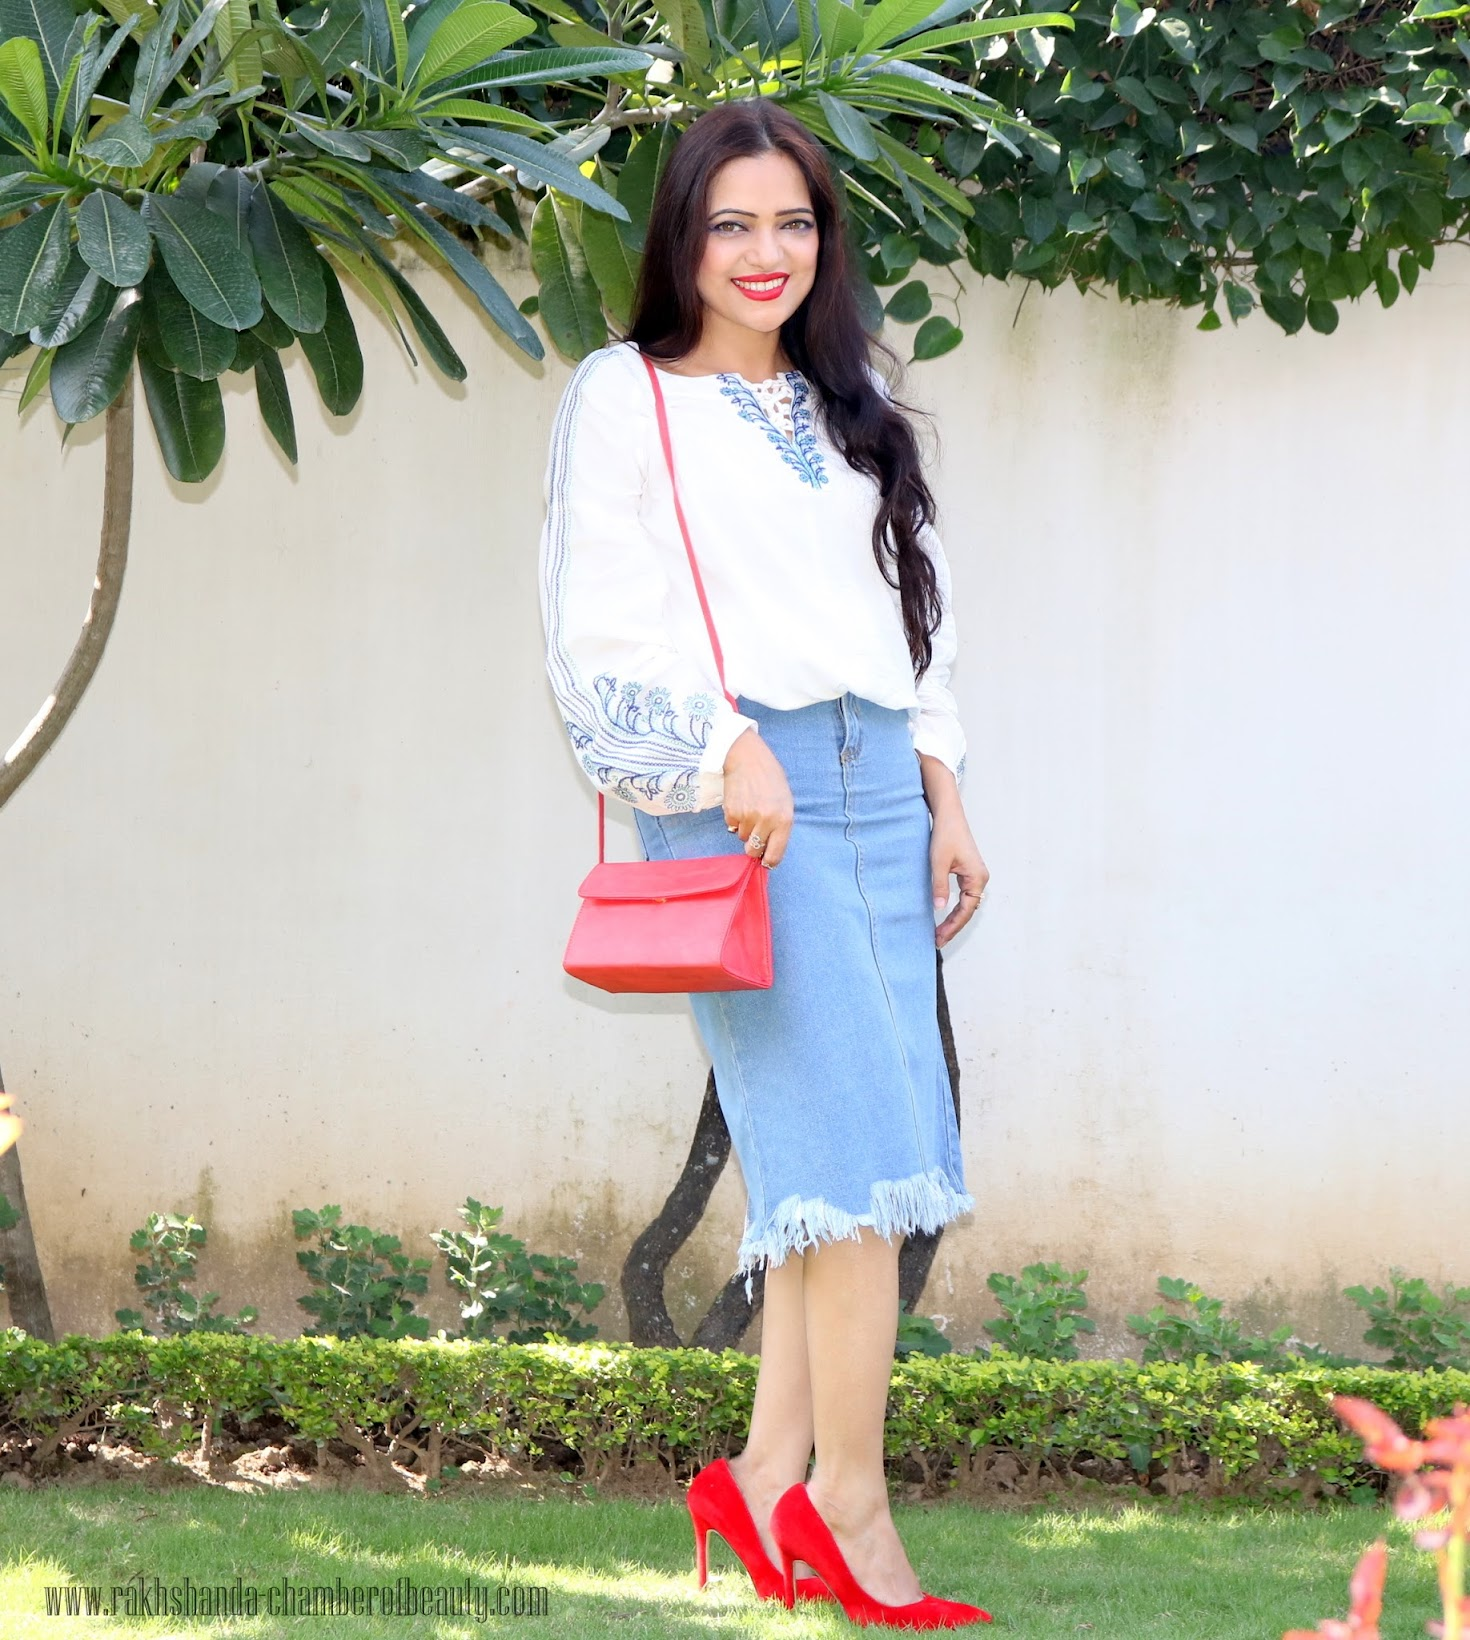 denim skirt with white embroidered blouse, Chamber Of Beauty, fall fashion trends 2015, how to style a denim skirt, zaful, Indian fashion blogger, outfit of the day, red bag, Stalk By Love, Lovely Wholesale, fall fashion, OOTD, denim skirt with white blouse, denim skirt with red heels, fashion, Embroidered blouse with denim skirt, Indian beauty blog